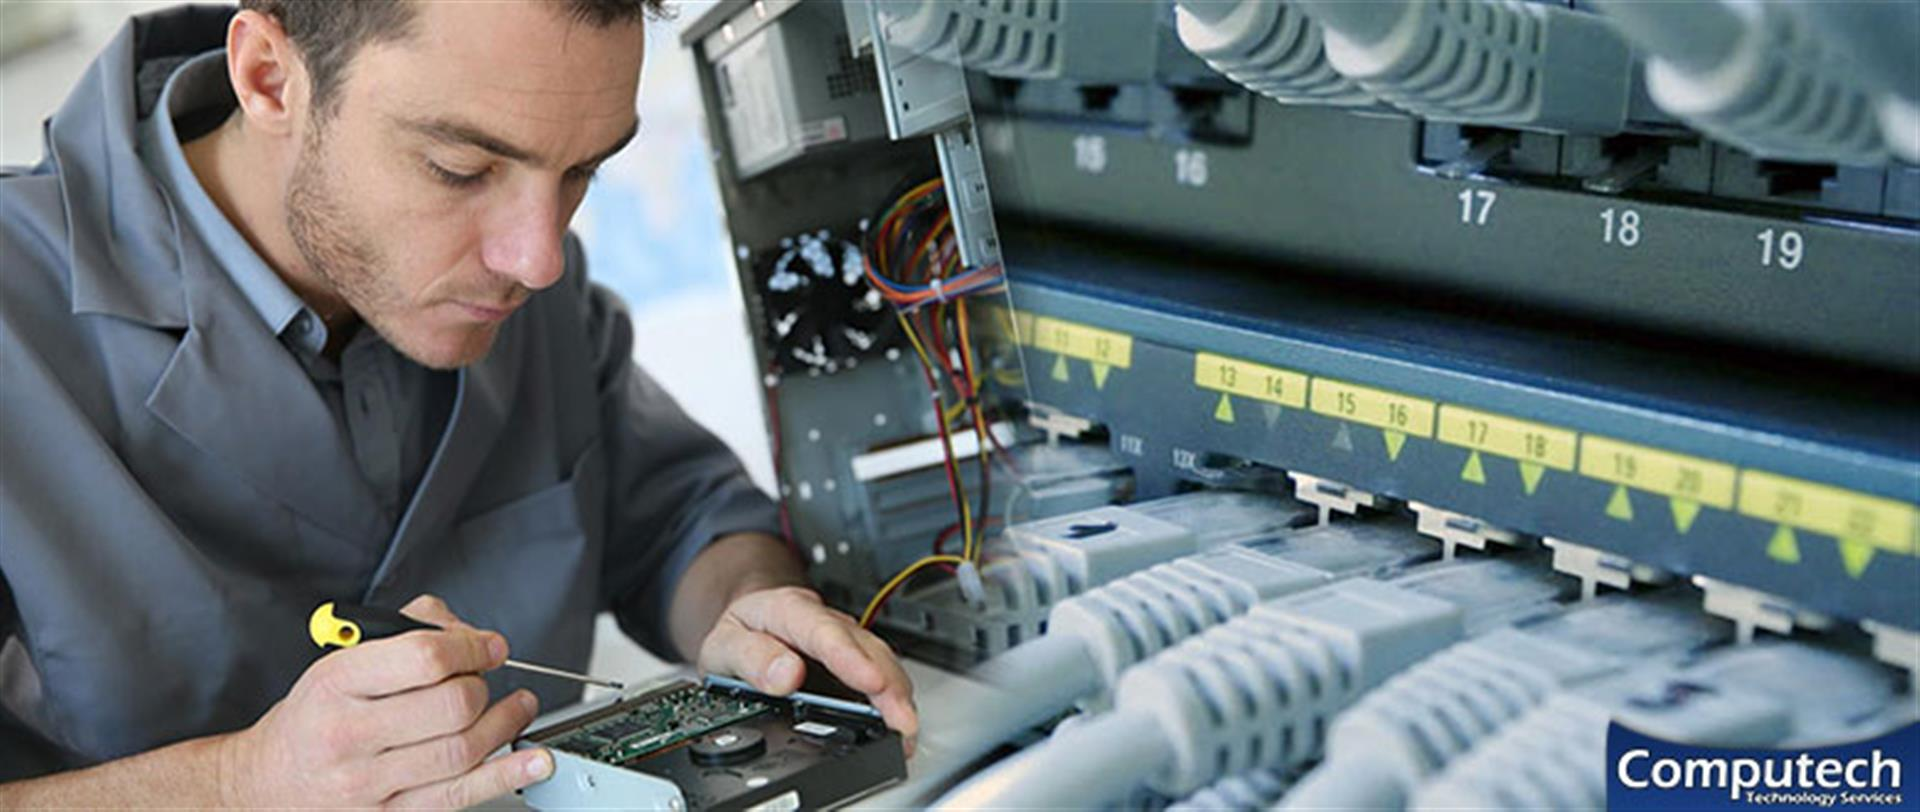 Collierville Tennessee On-Site Computer PC & Printer Repair, Network, Voice & Data Cabling Services